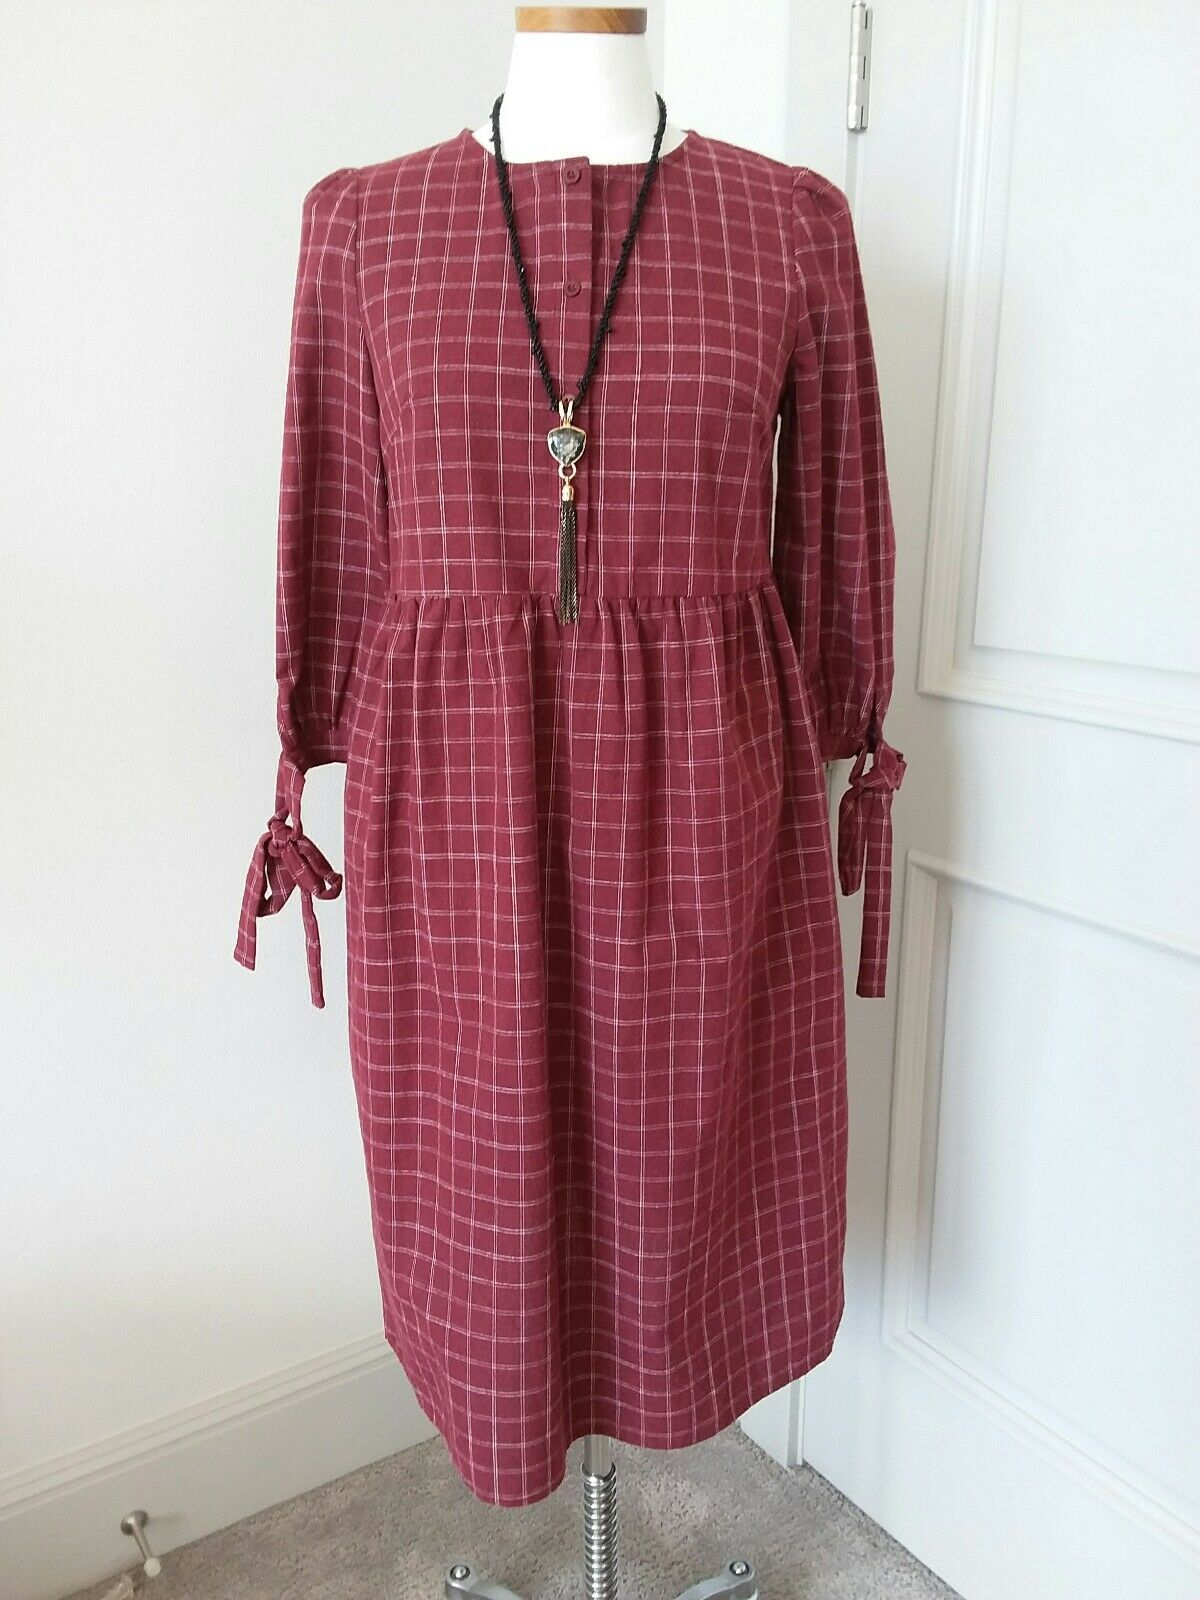 Stevie Henderson Plaid Burgundy 3 4 Sleeve Dress Sz S NWT